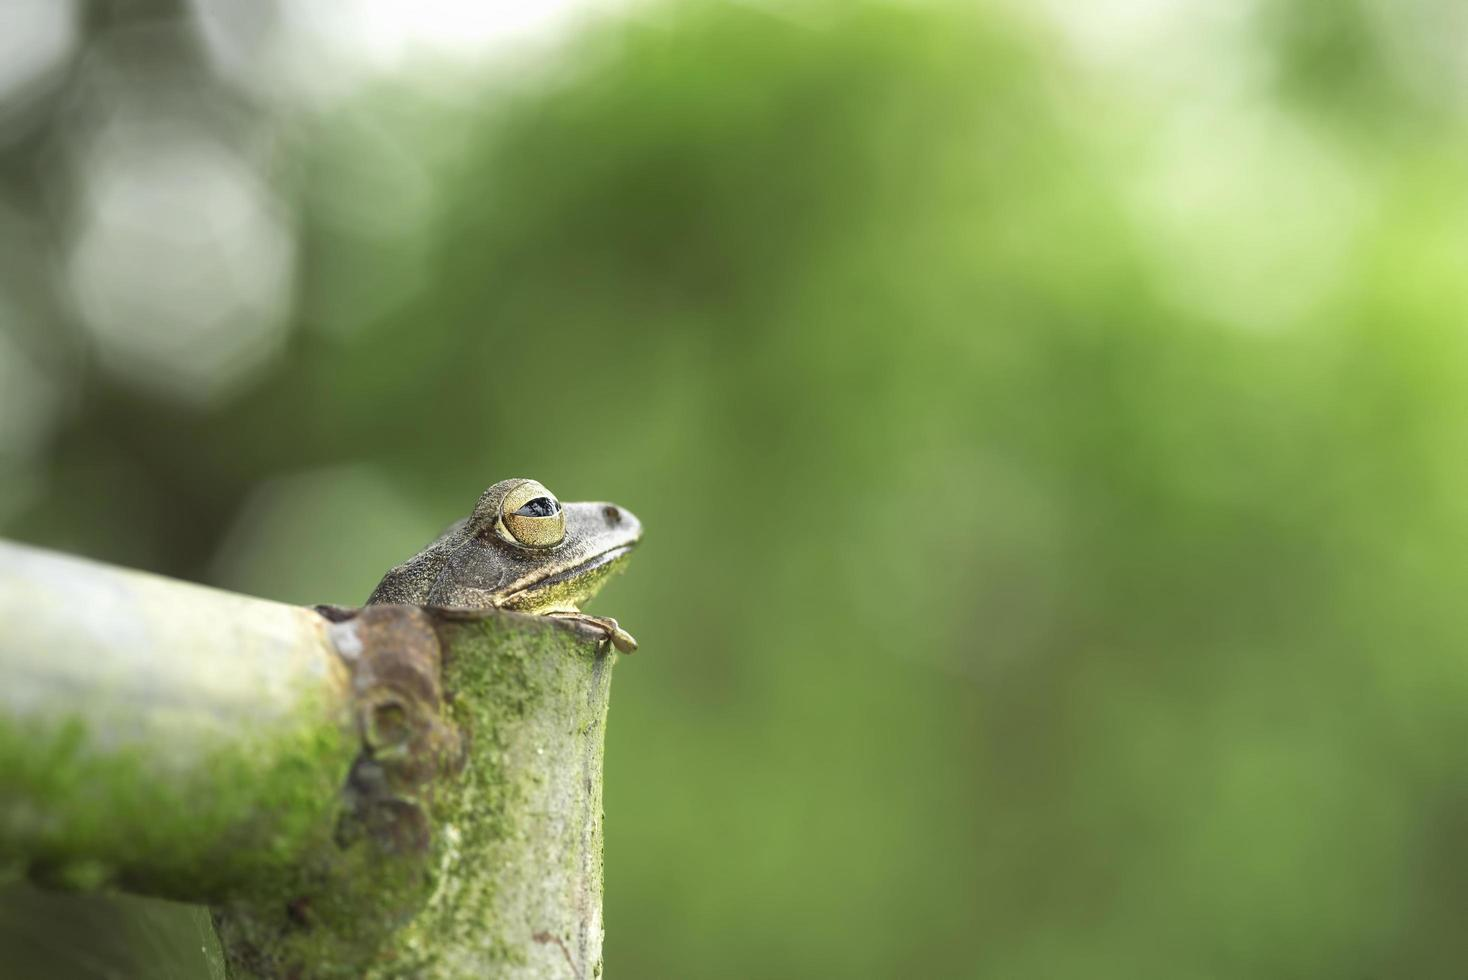 Common tree frog in steel pipe photo